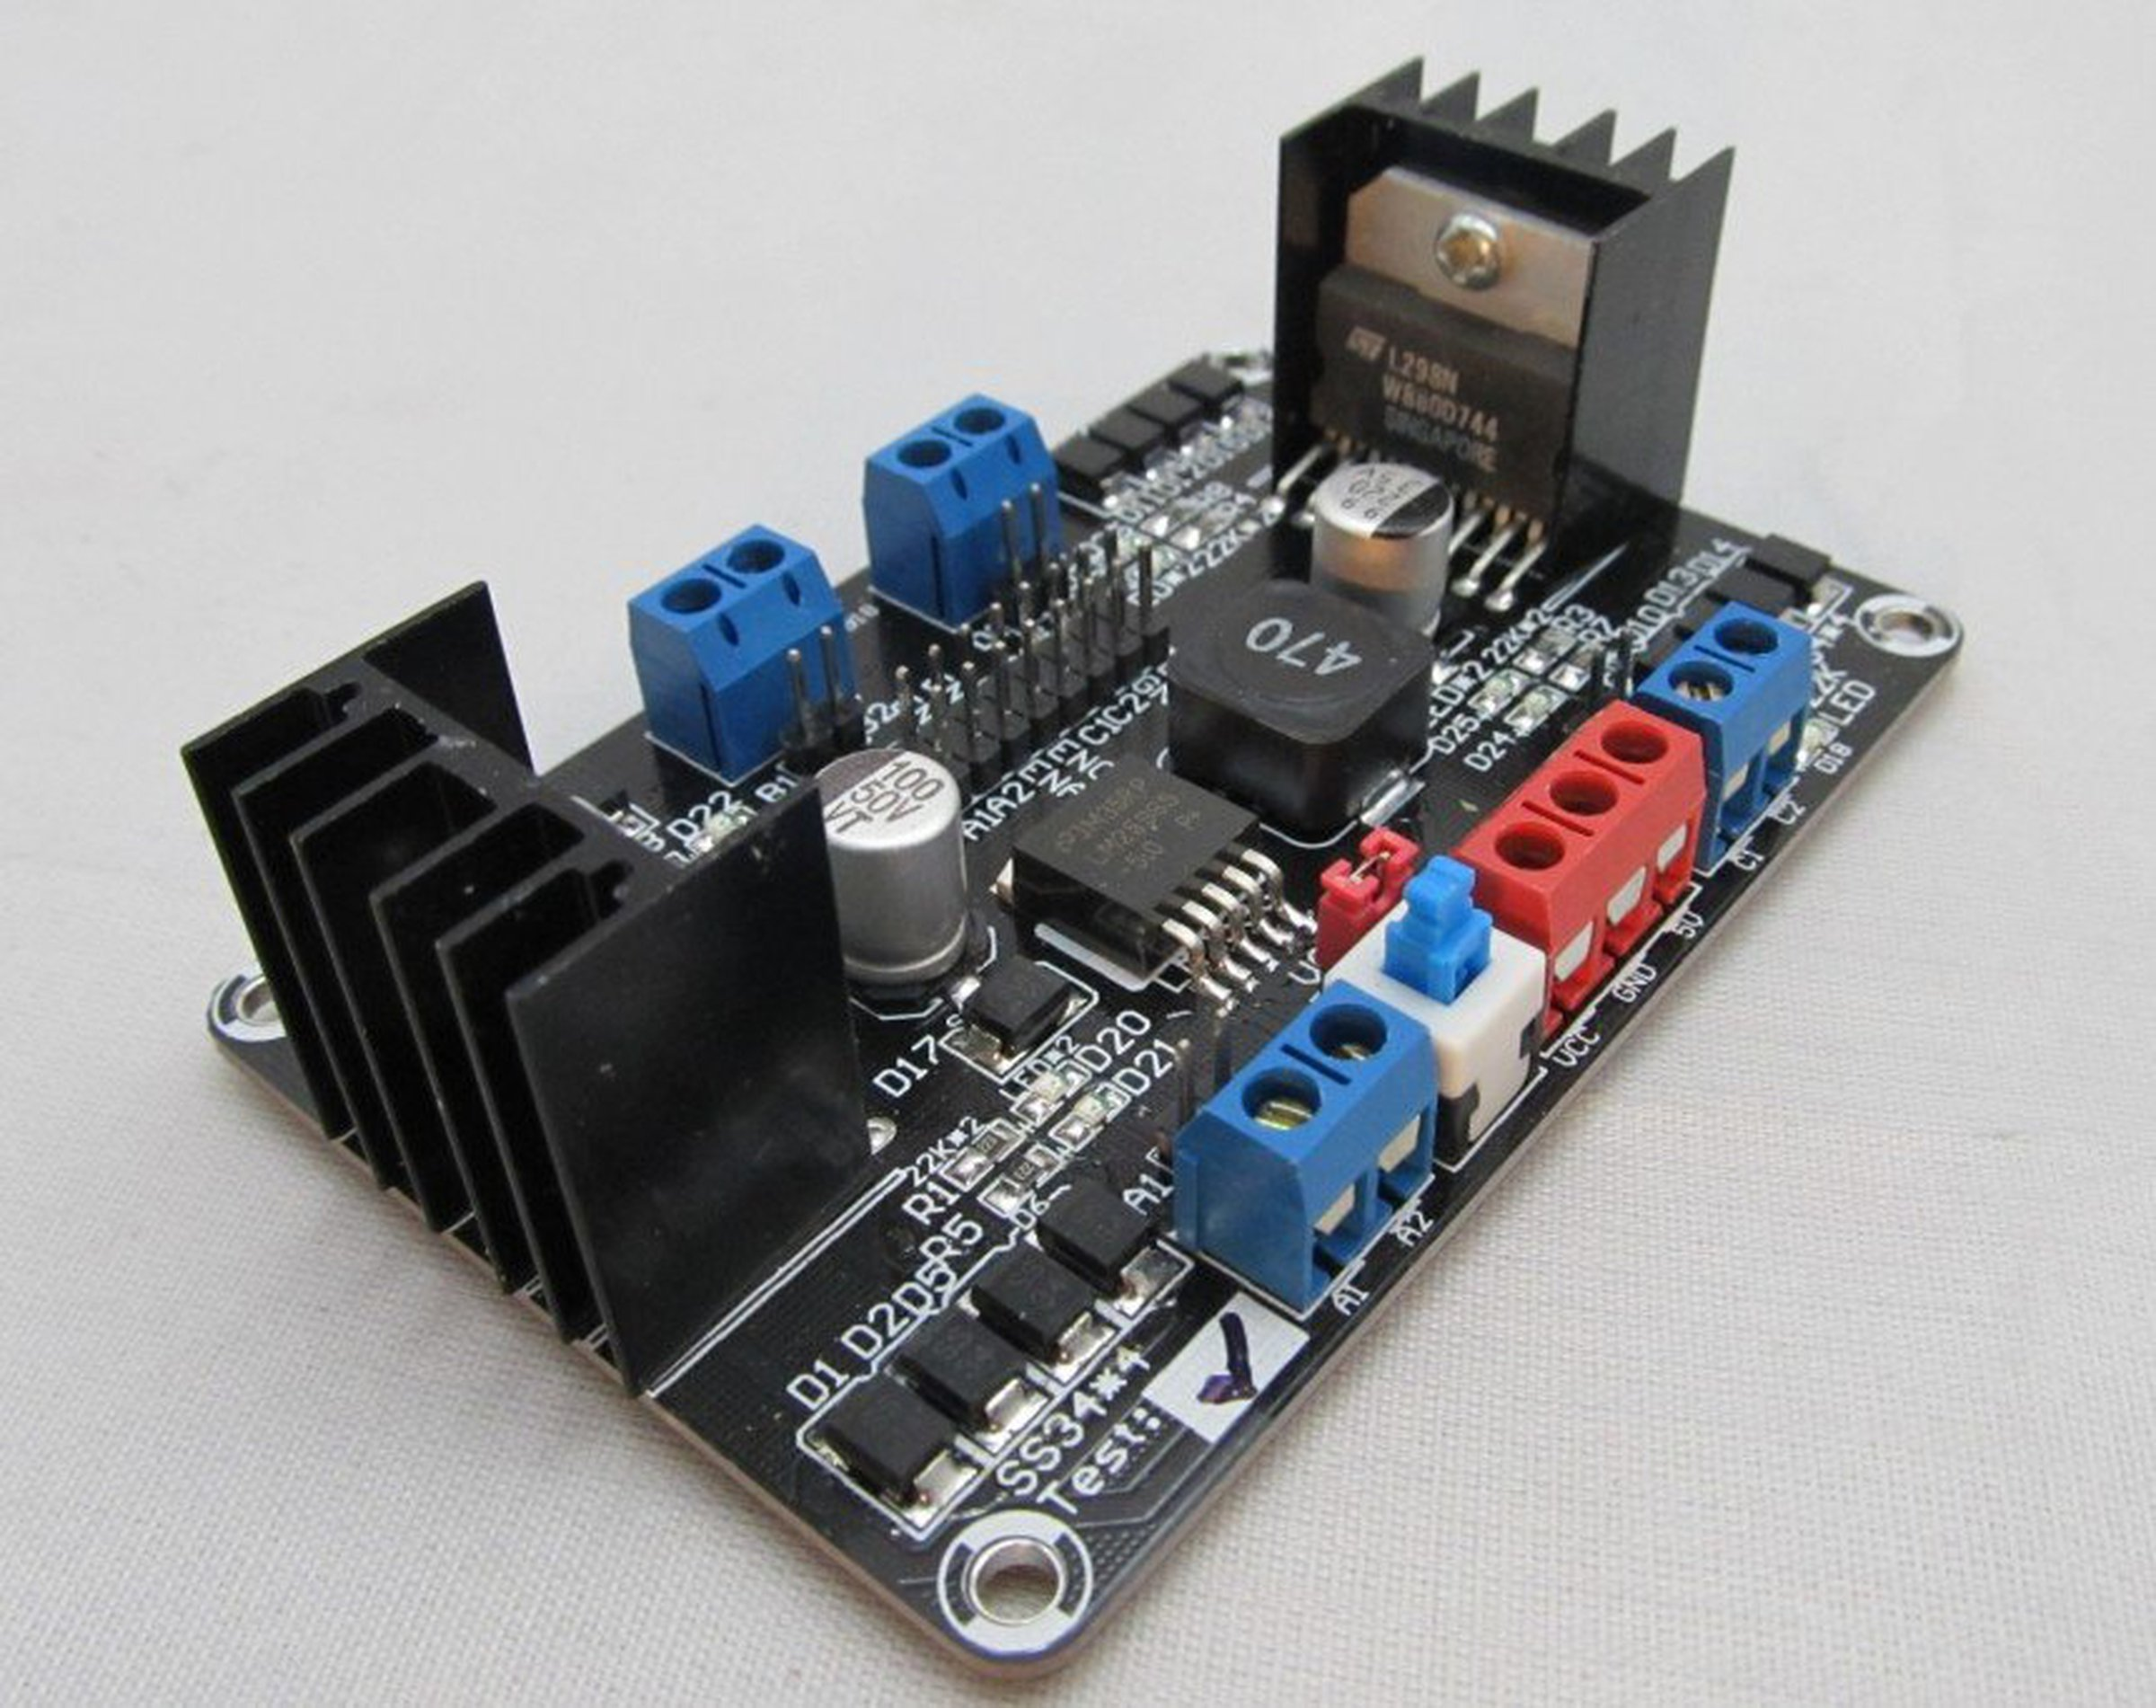 4dc Motor Controller For 4wd Robot Chassis From Mhobbies